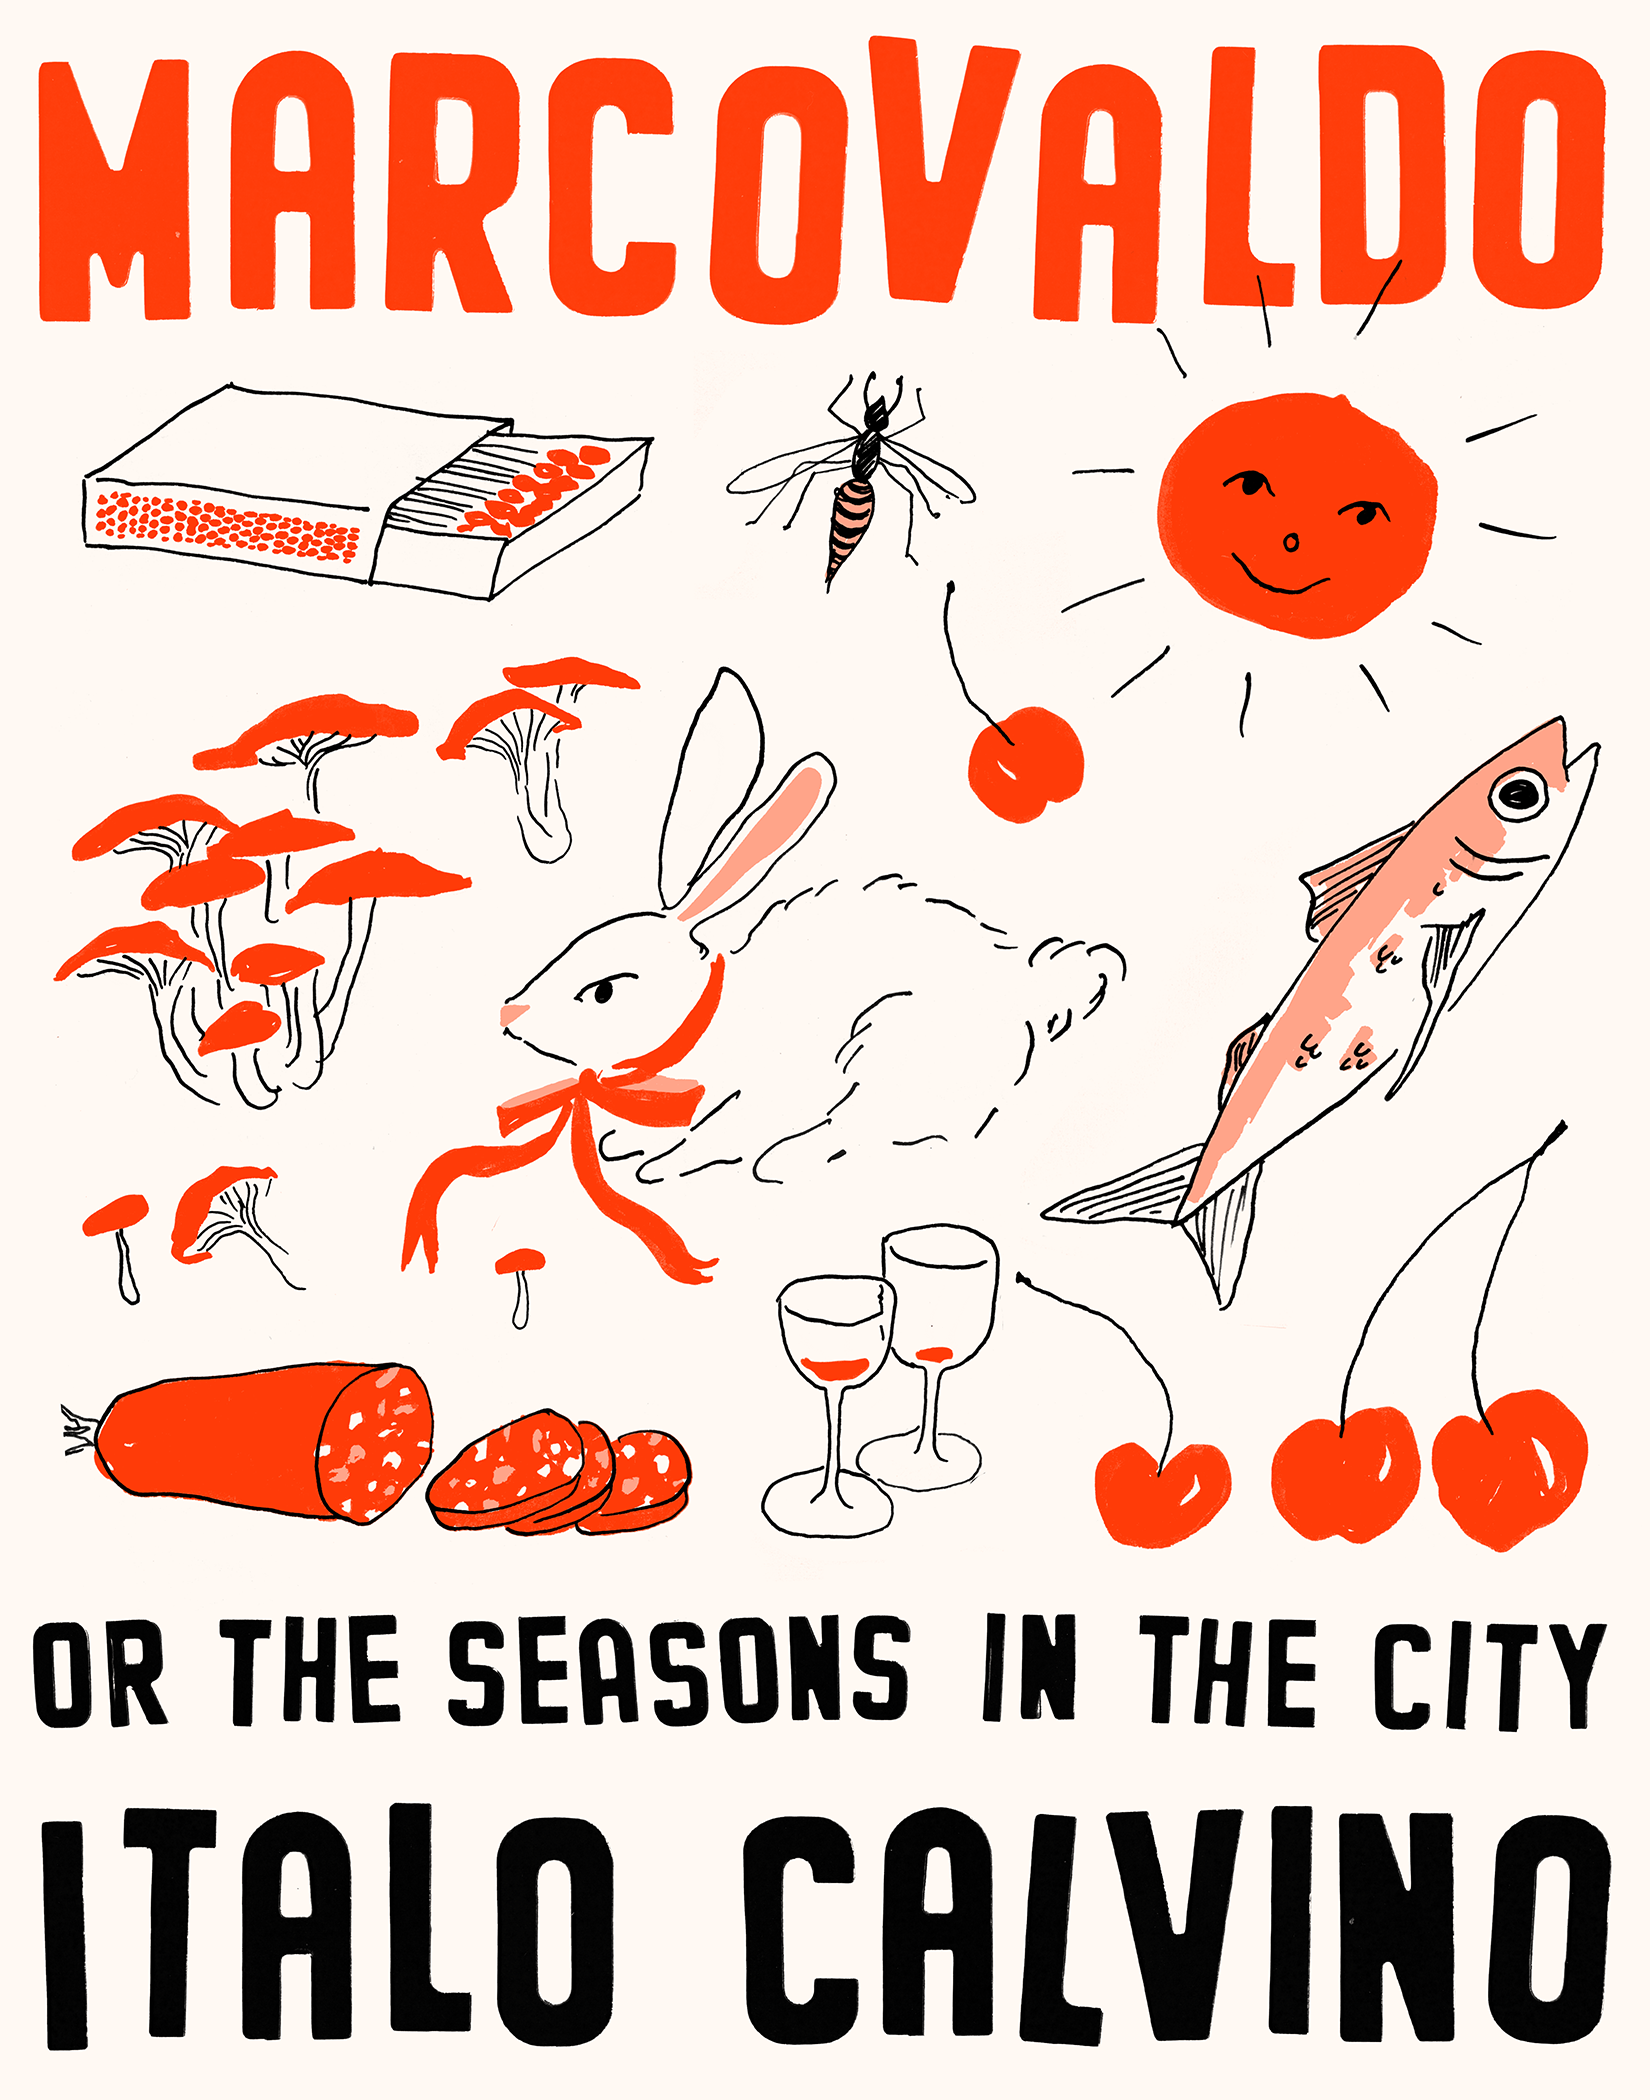 Marcovaldo, or the Seasons in the City poster print by Liana Jegers